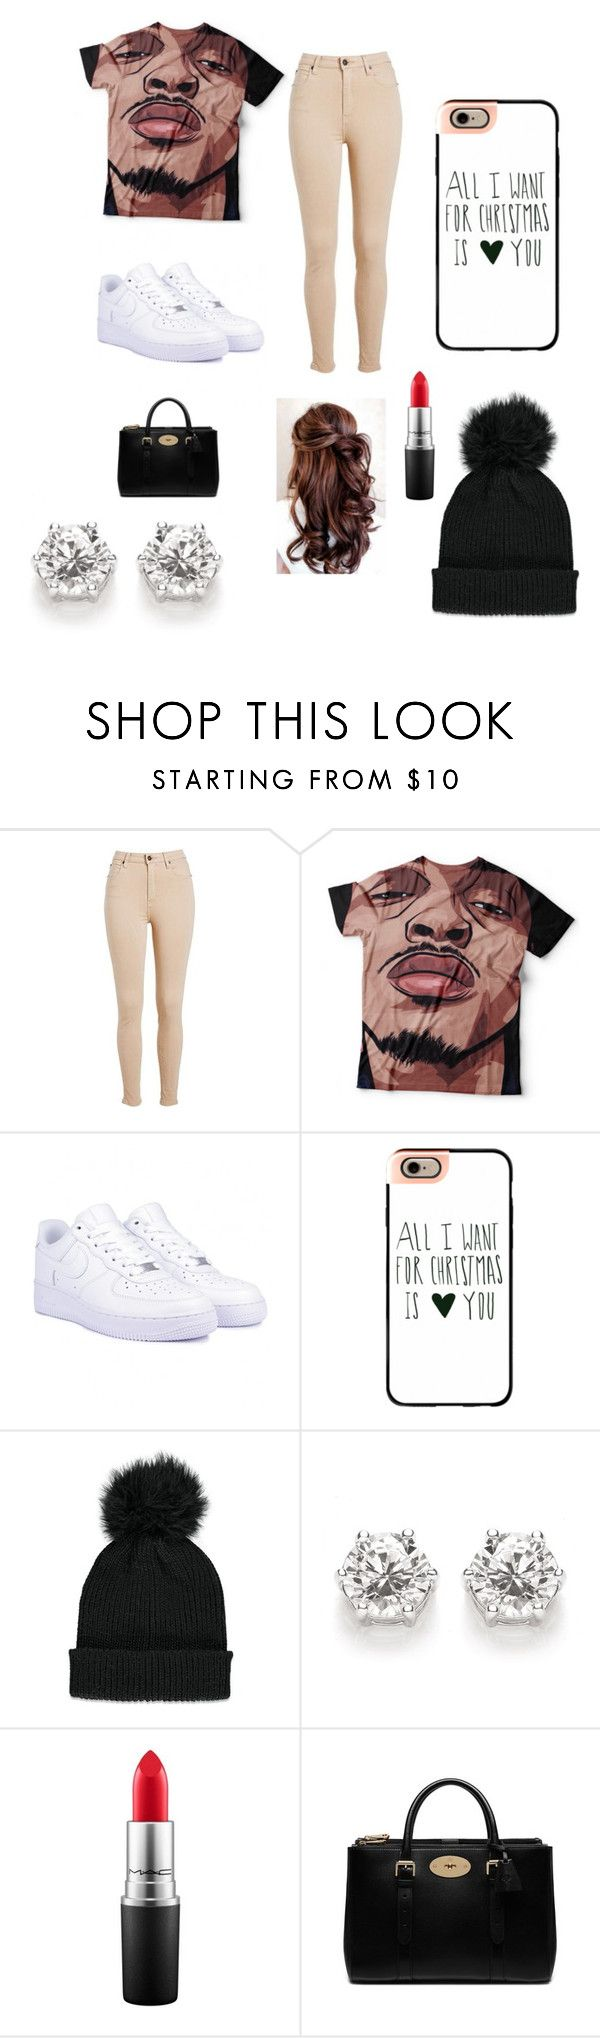 """August Alsina Concert featuring diamond earrings"" by shakira-luvs-august-alsina on Polyvore featuring NIKE, Casetify, Forever 21, MAC Cosmetics and Mulberry"